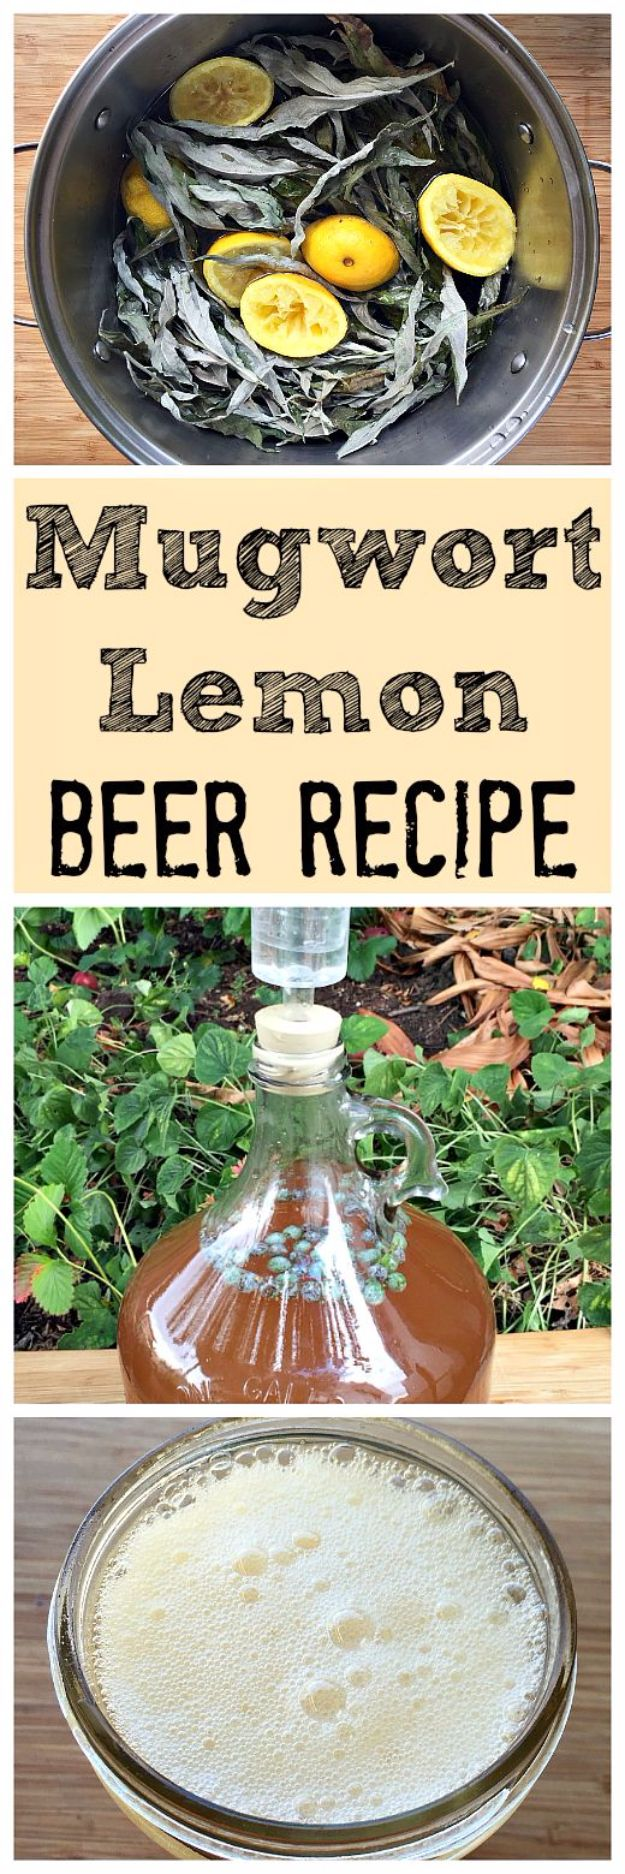 Best Homemade Beer Recipes - Mugwort Lemon Beer - Easy Homebrew Drinks and Brewing Tutorials for Craft Beers Made at Home - IPA, Summer, Red, Lager and Ales - Instructions and Step by Step Tutorials for Making Beer at Home http://diyjoy.com/homemade-beer-recipes